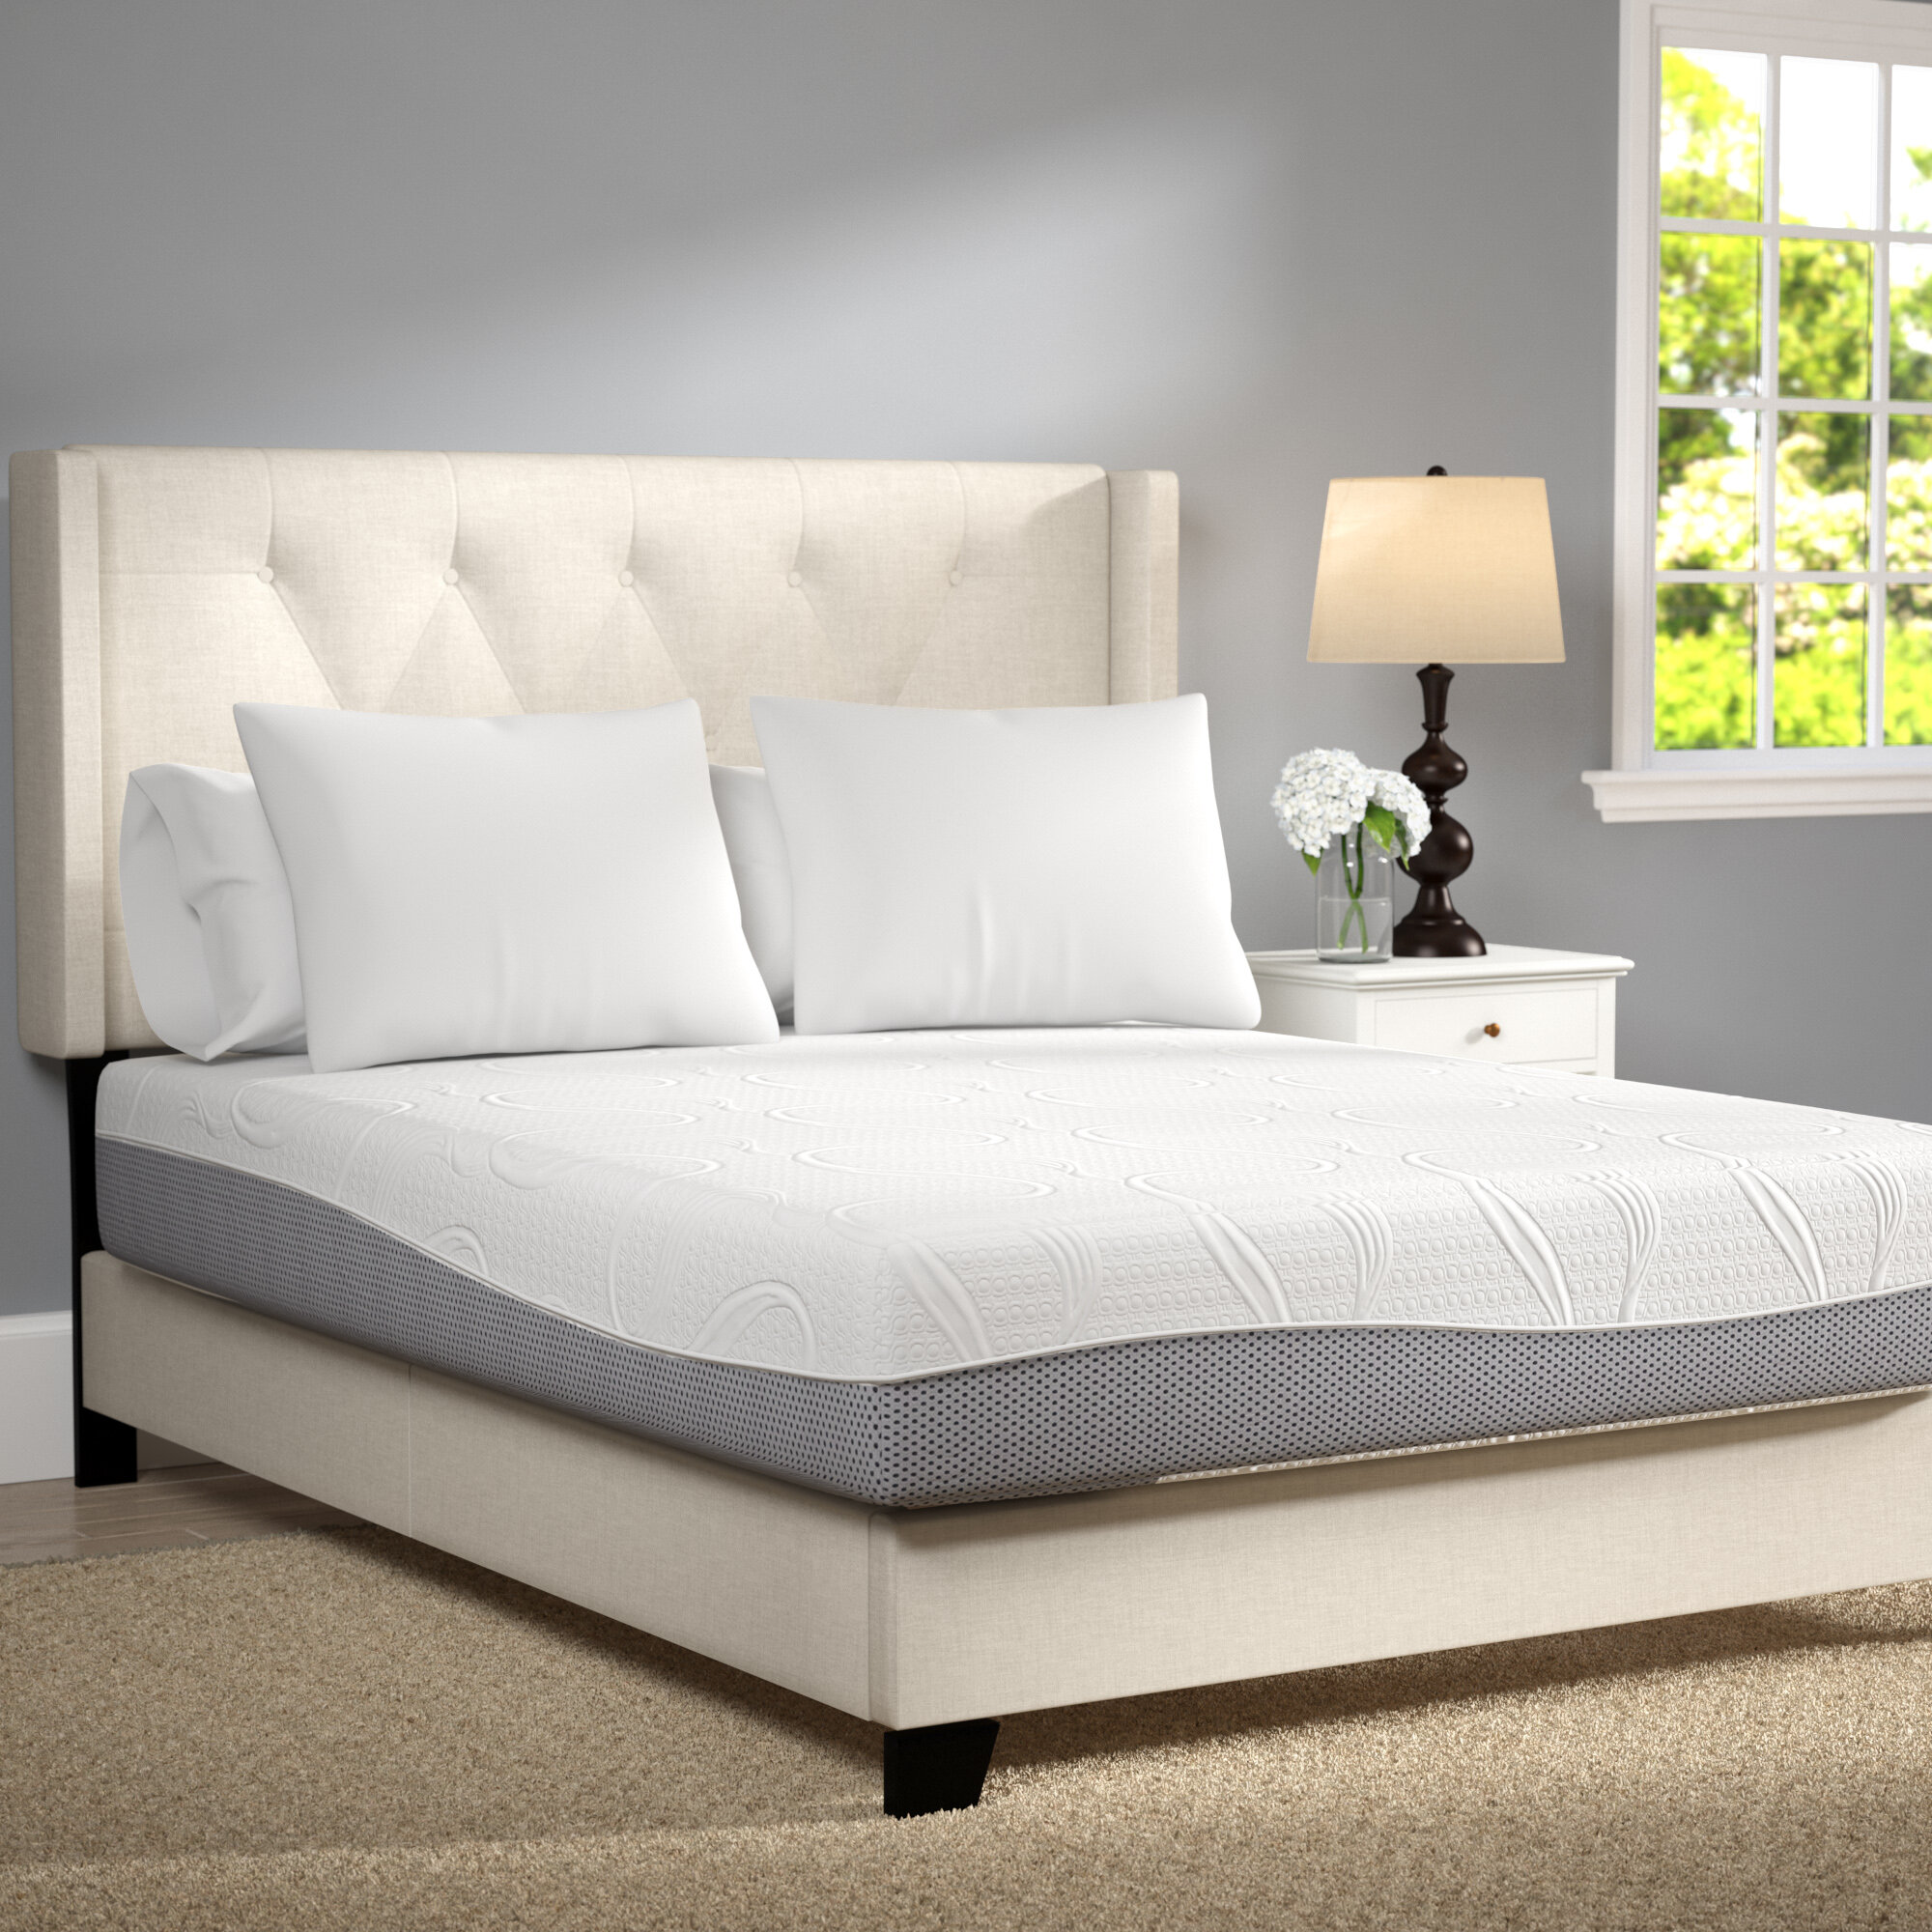 memory s ultra a this with get tempurpedic night good of new sale foam rest soft mattress custom